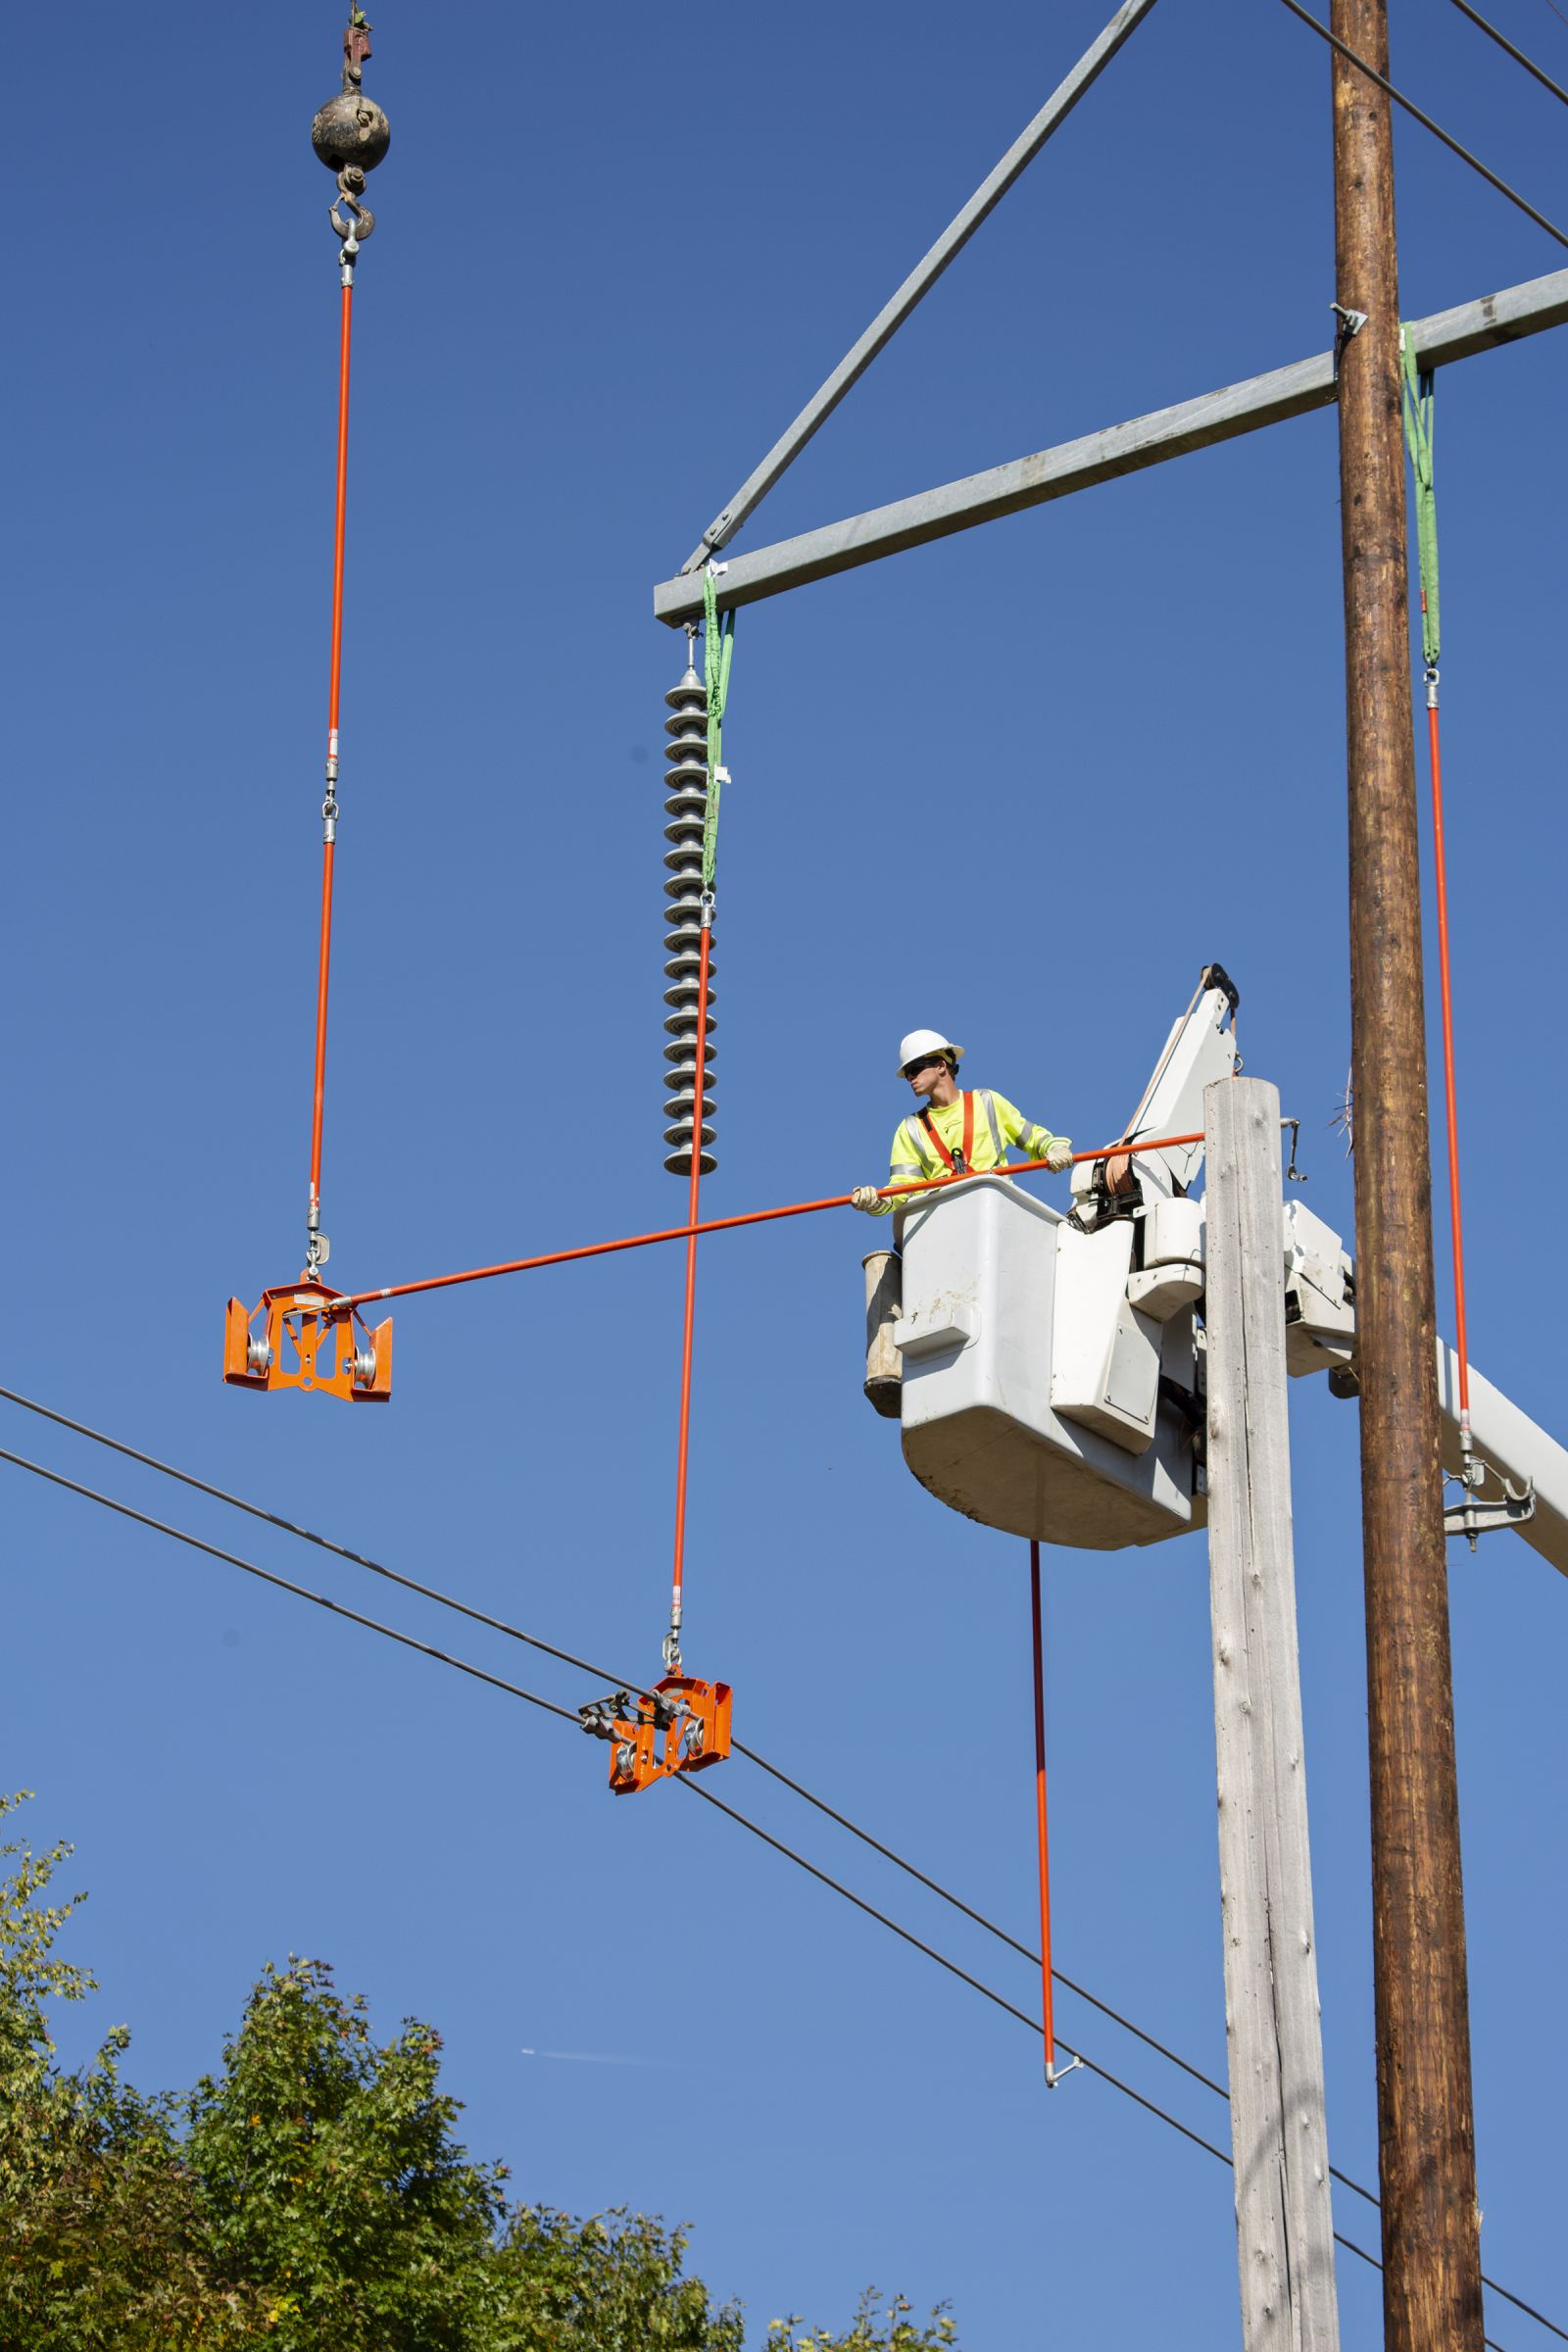 Welcome To On Target Utility Services Underground Electrical Service Cable Power Line